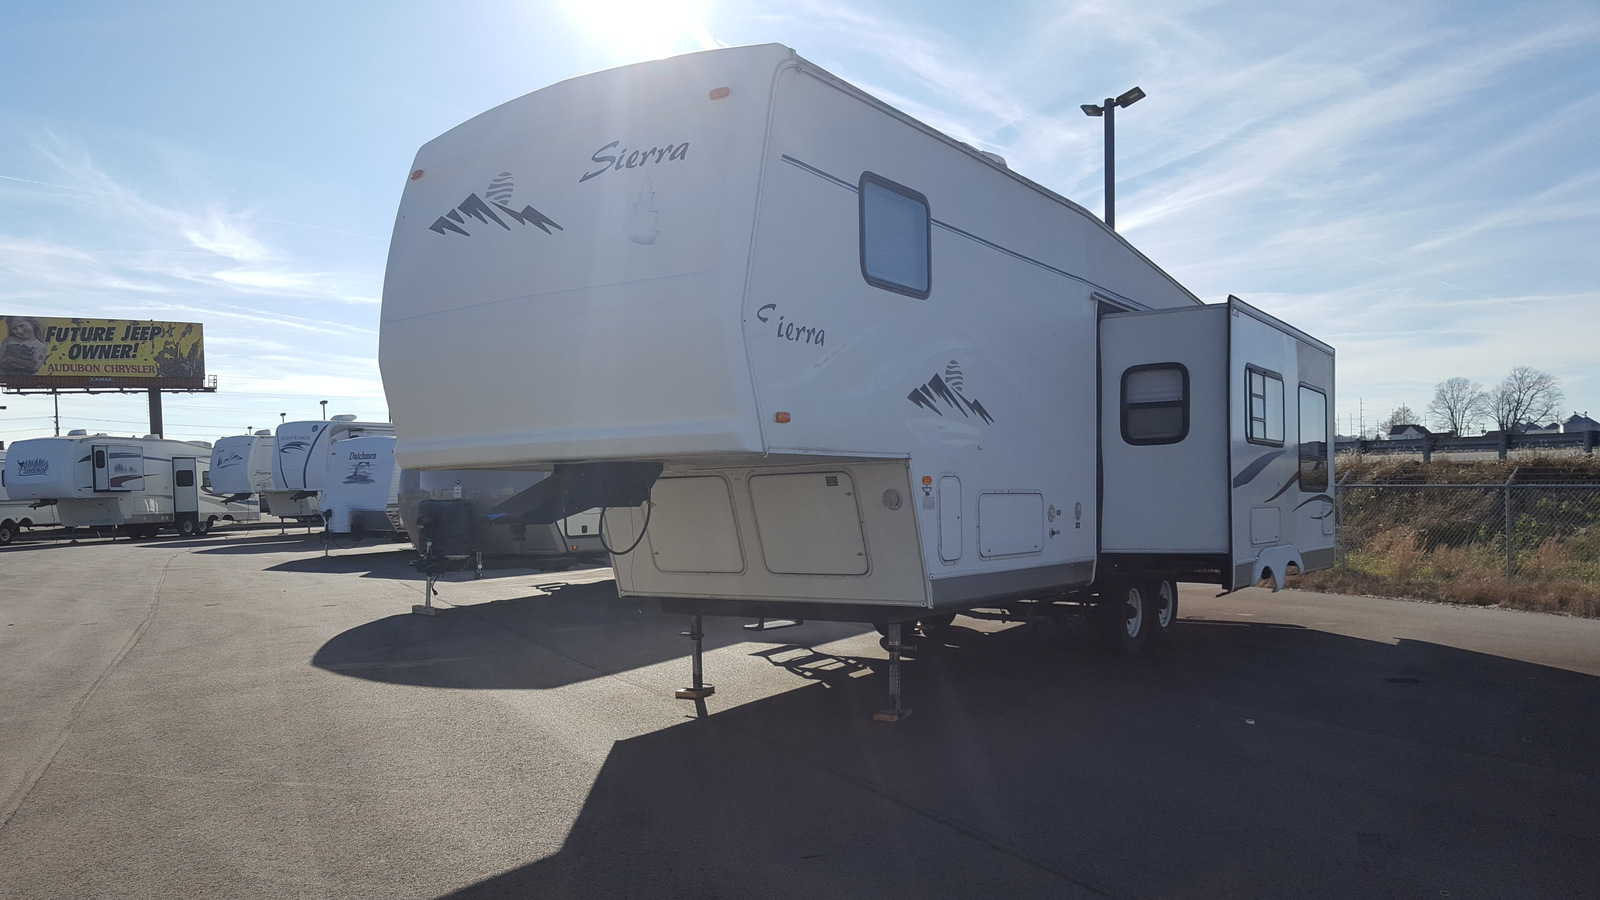 USED 2001 Forest River SIERRA 27RKSS - American RV